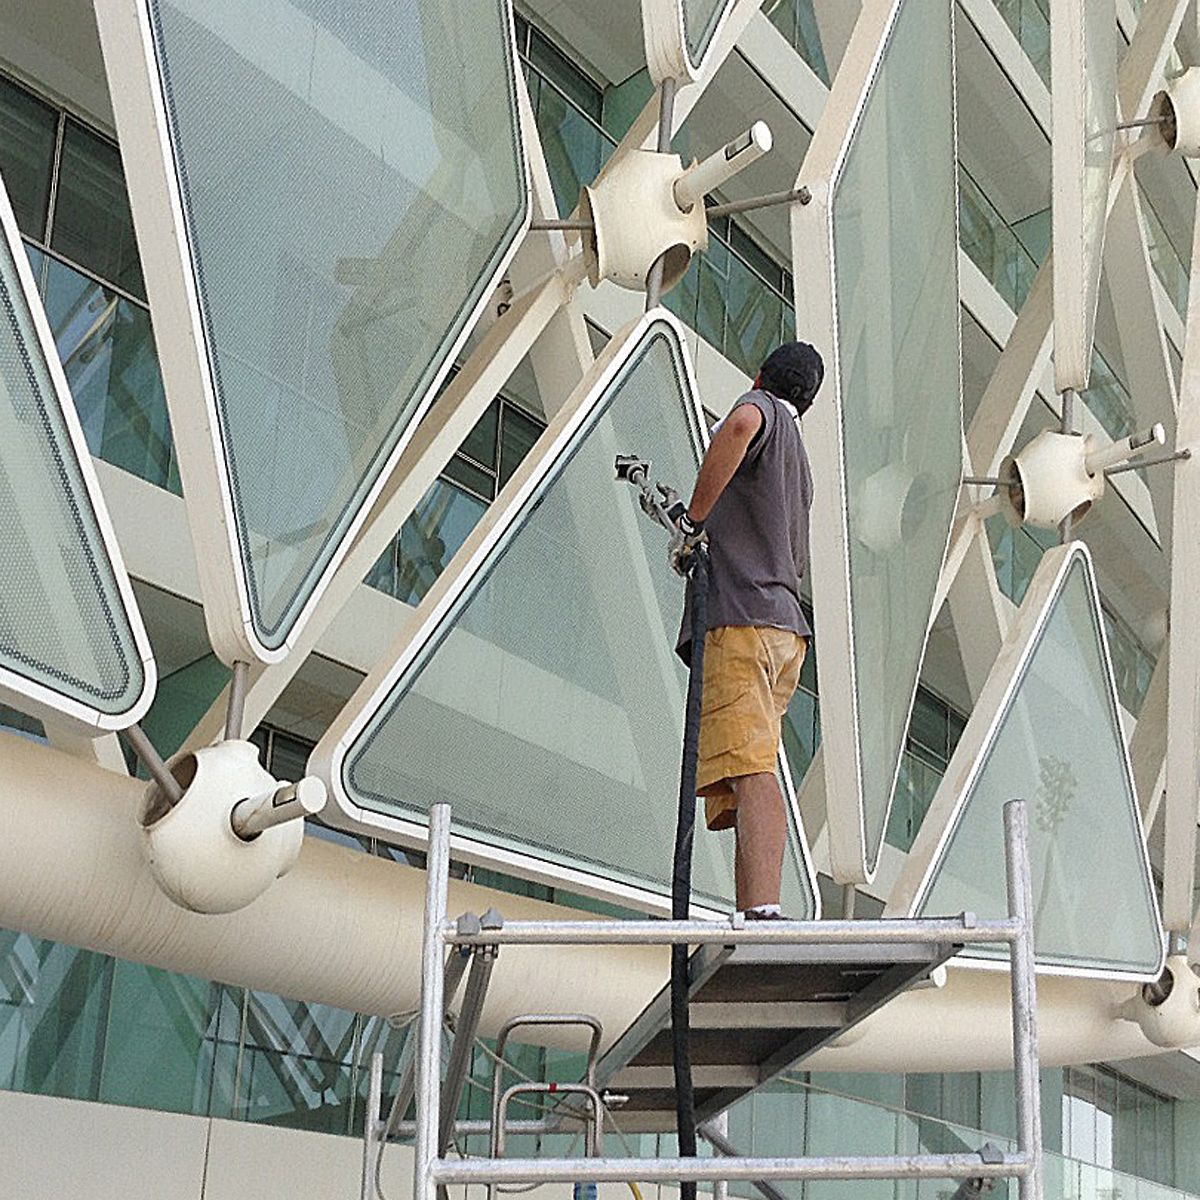 Cleaning a hotel façade in Abu Dhabi